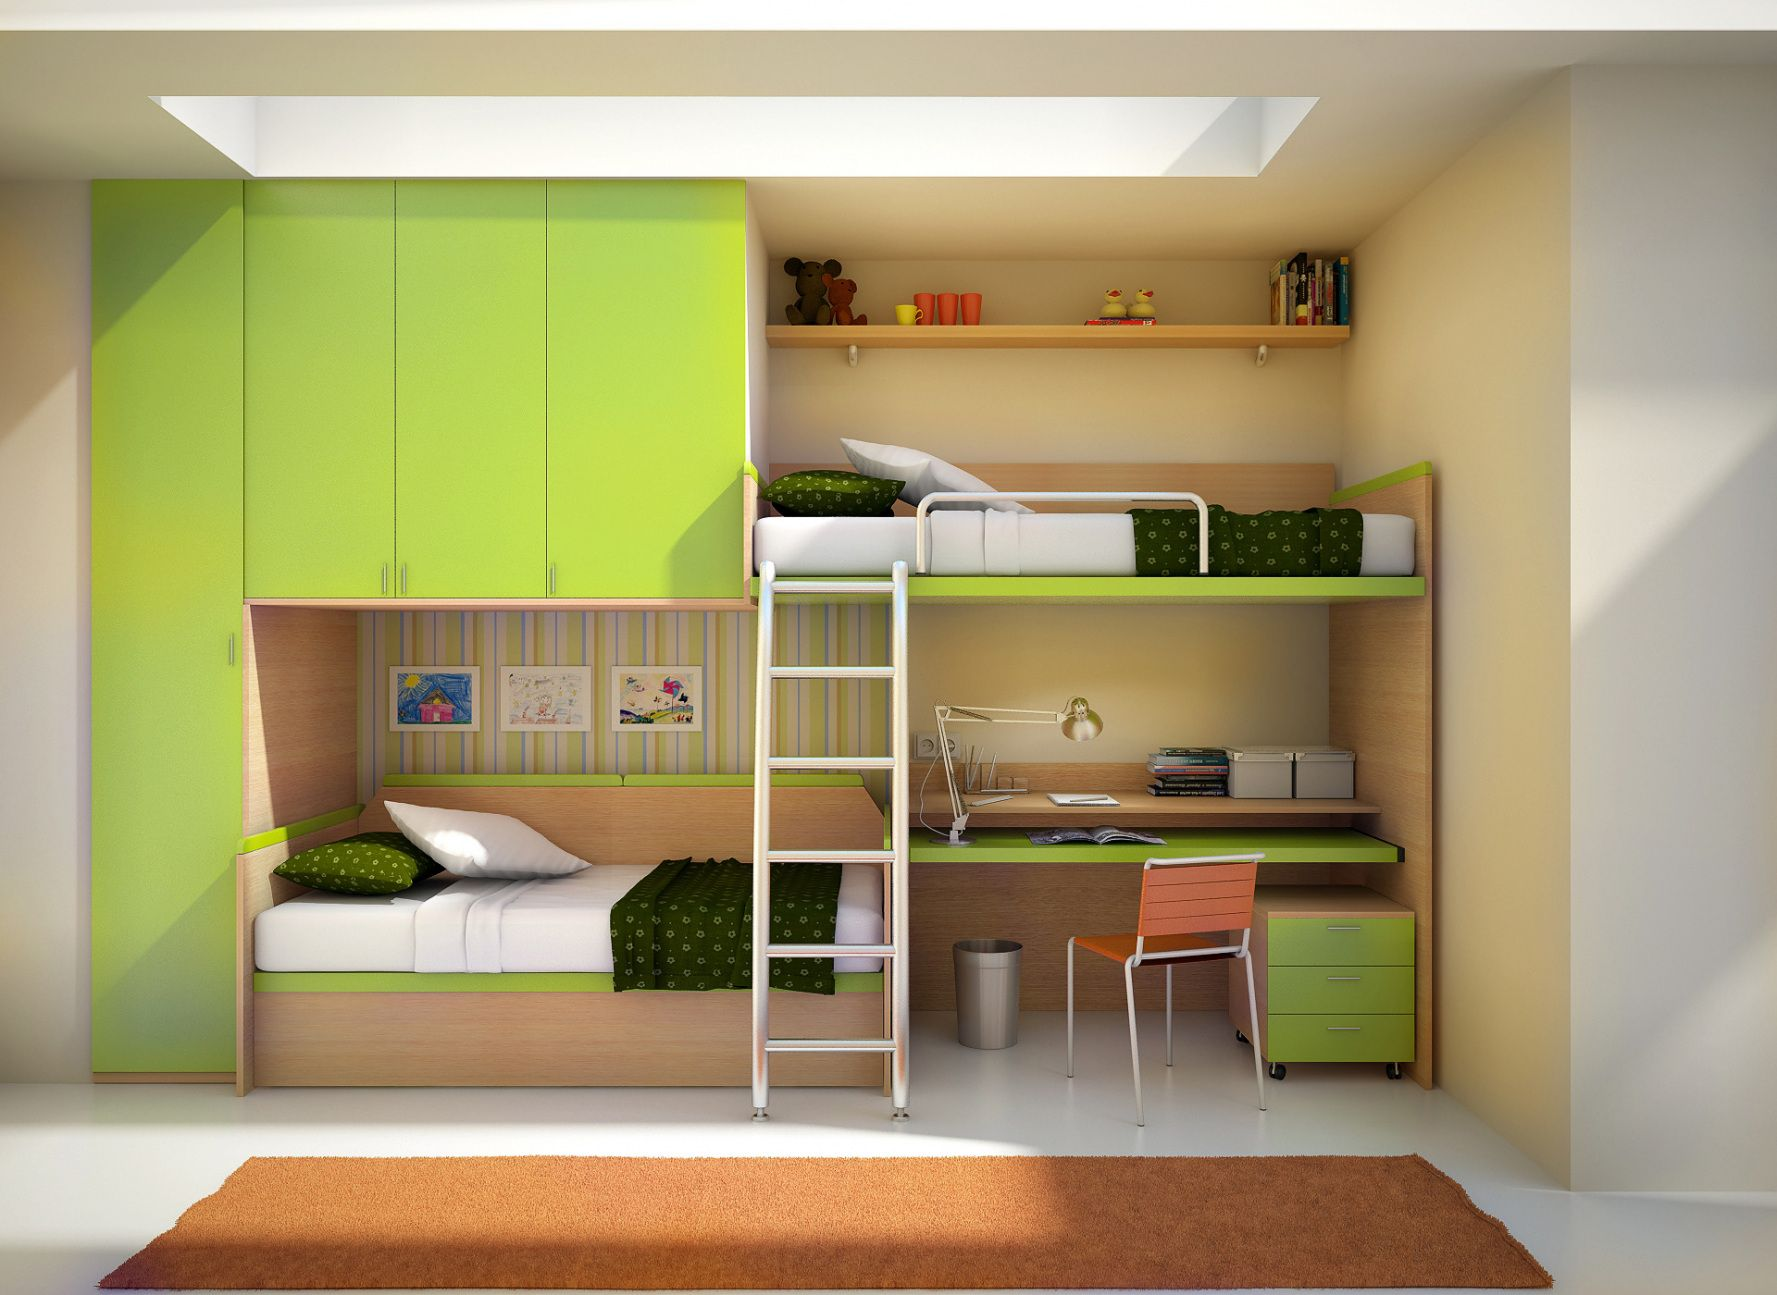 99+ Bunk Beds For Teenagers  Interior Design Ideas For